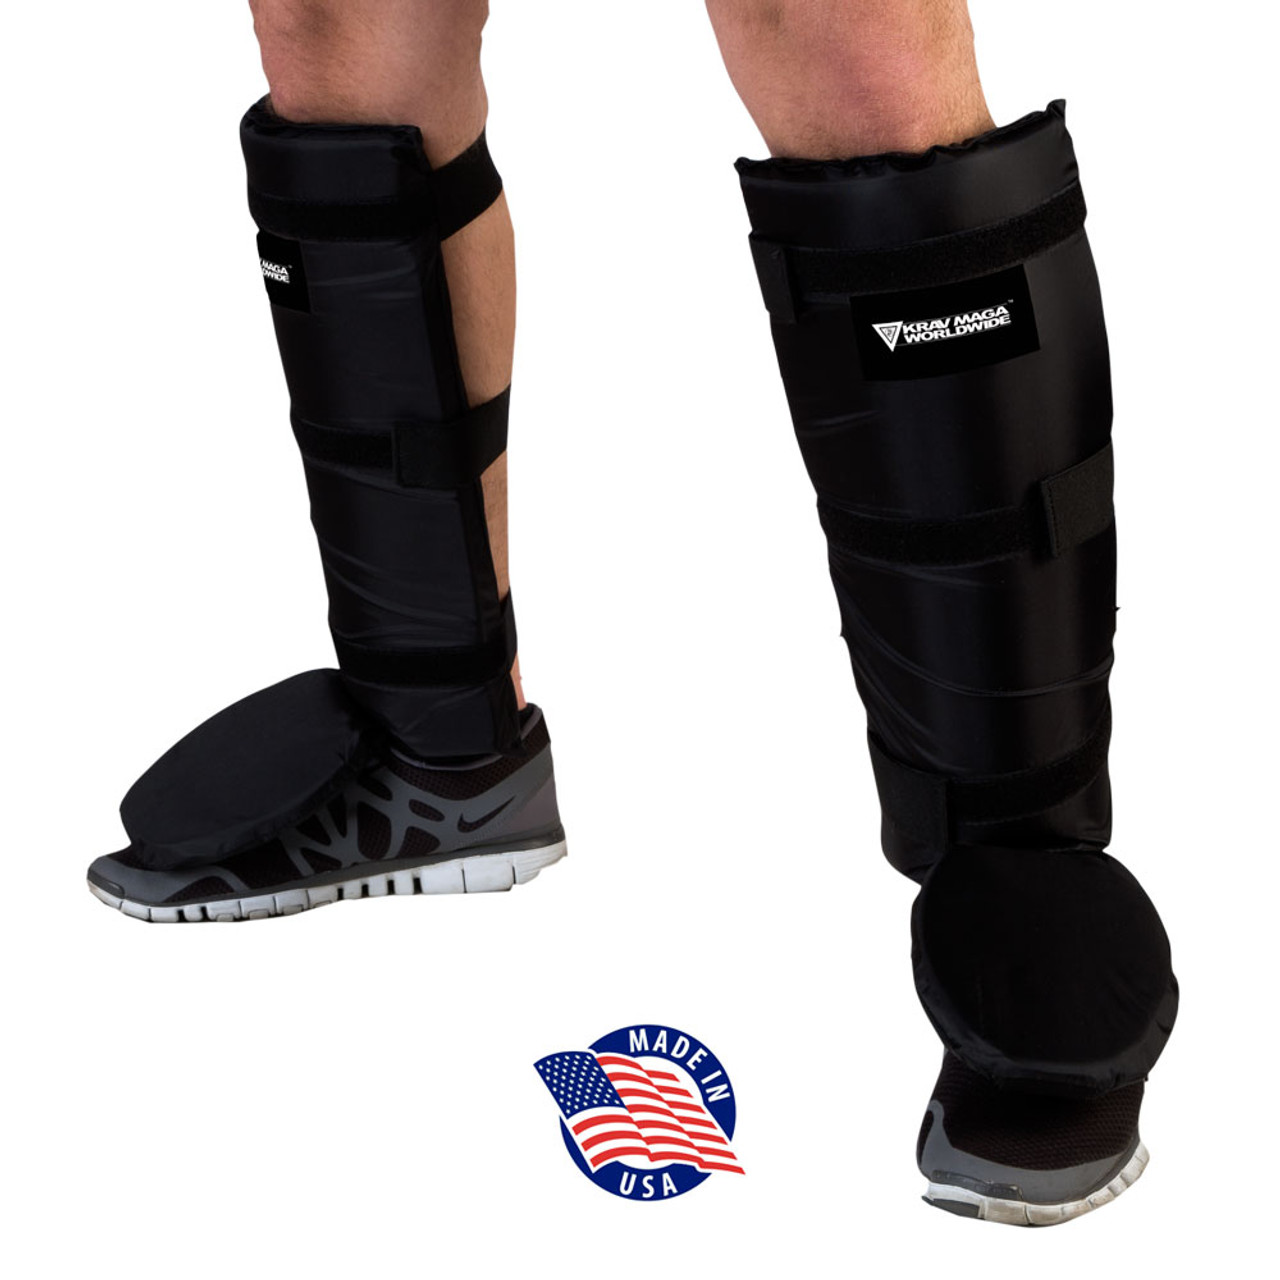 Krav Maga Ultralight Shoe Shin Guards